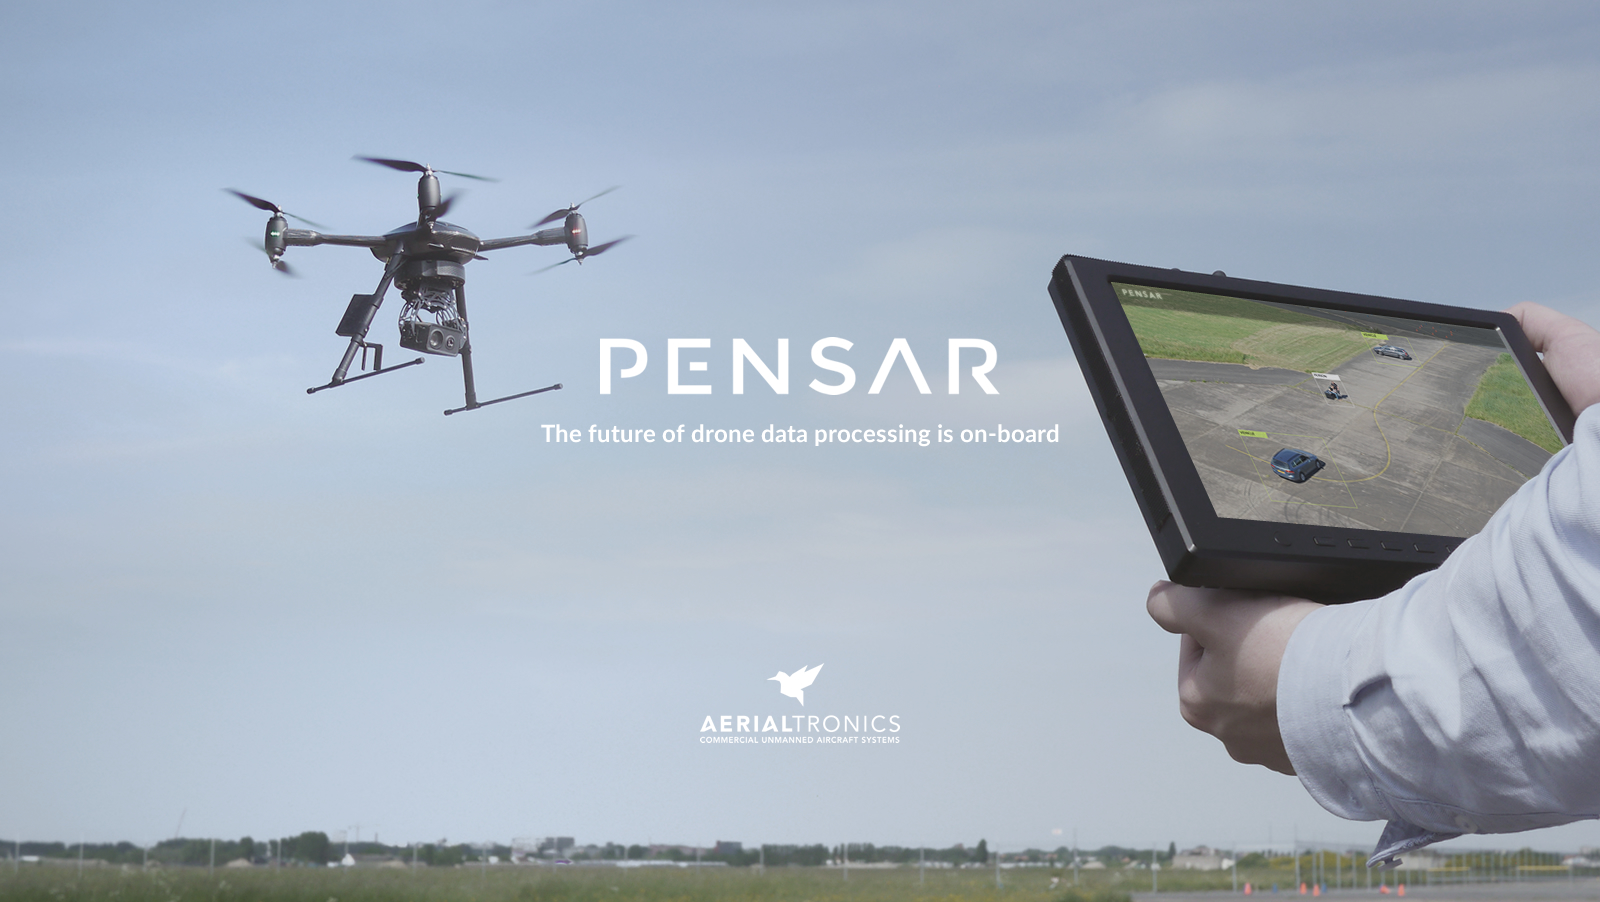 AERIALTRONICS releases the new version of its intelligent camera